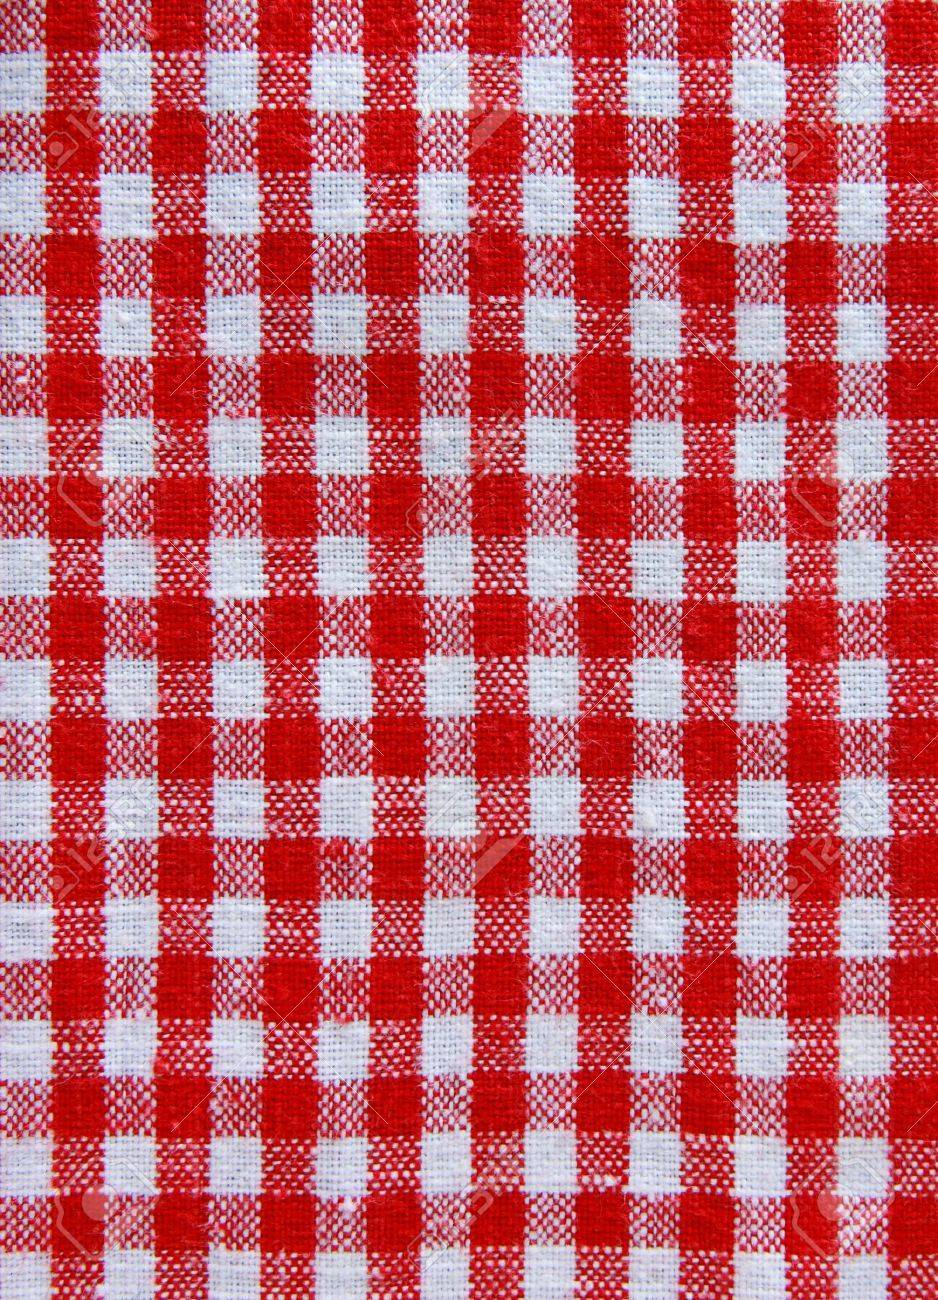 tablecloth fabric Stock Photo - 8200254